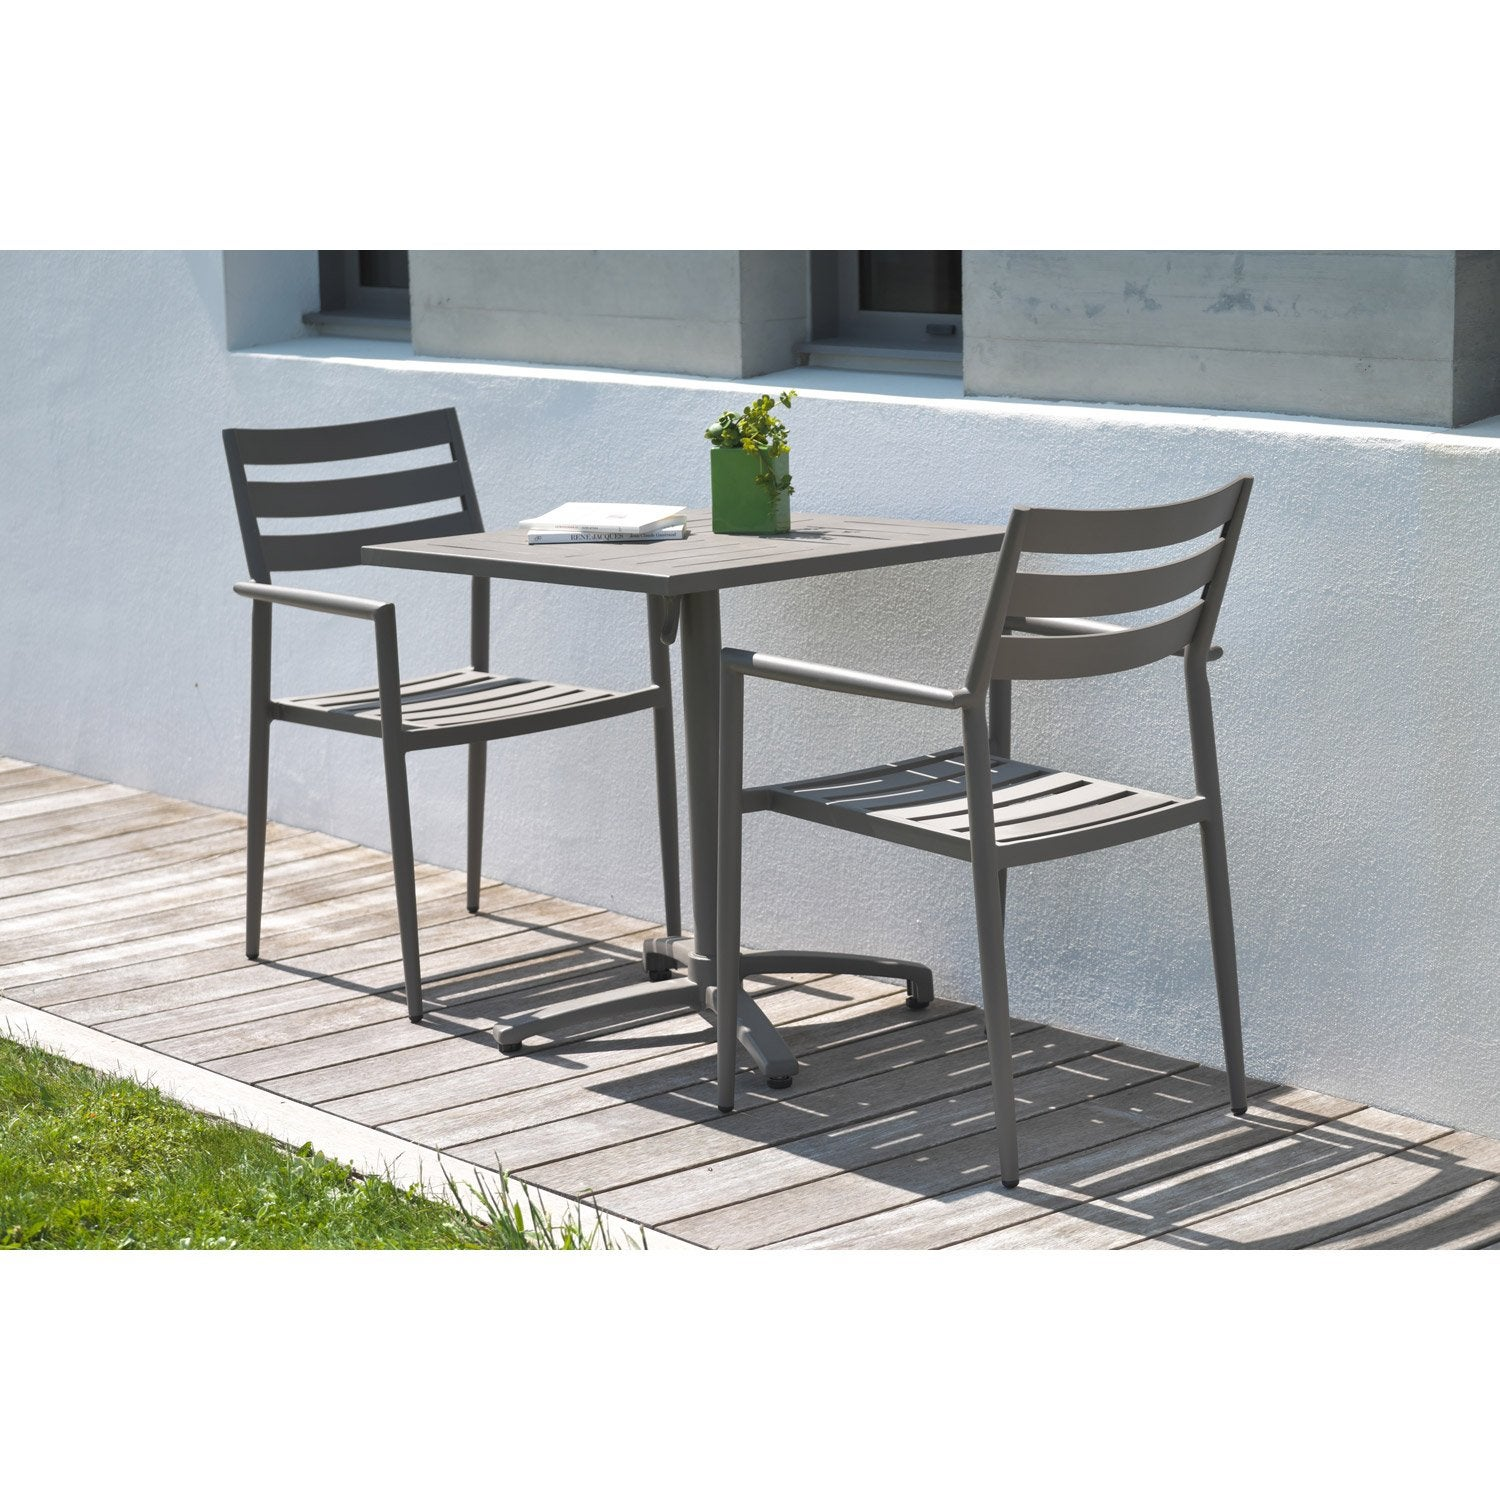 Etonnant table jardin 2 personnes 5 leroy merlin for Leroy merlin table jardin